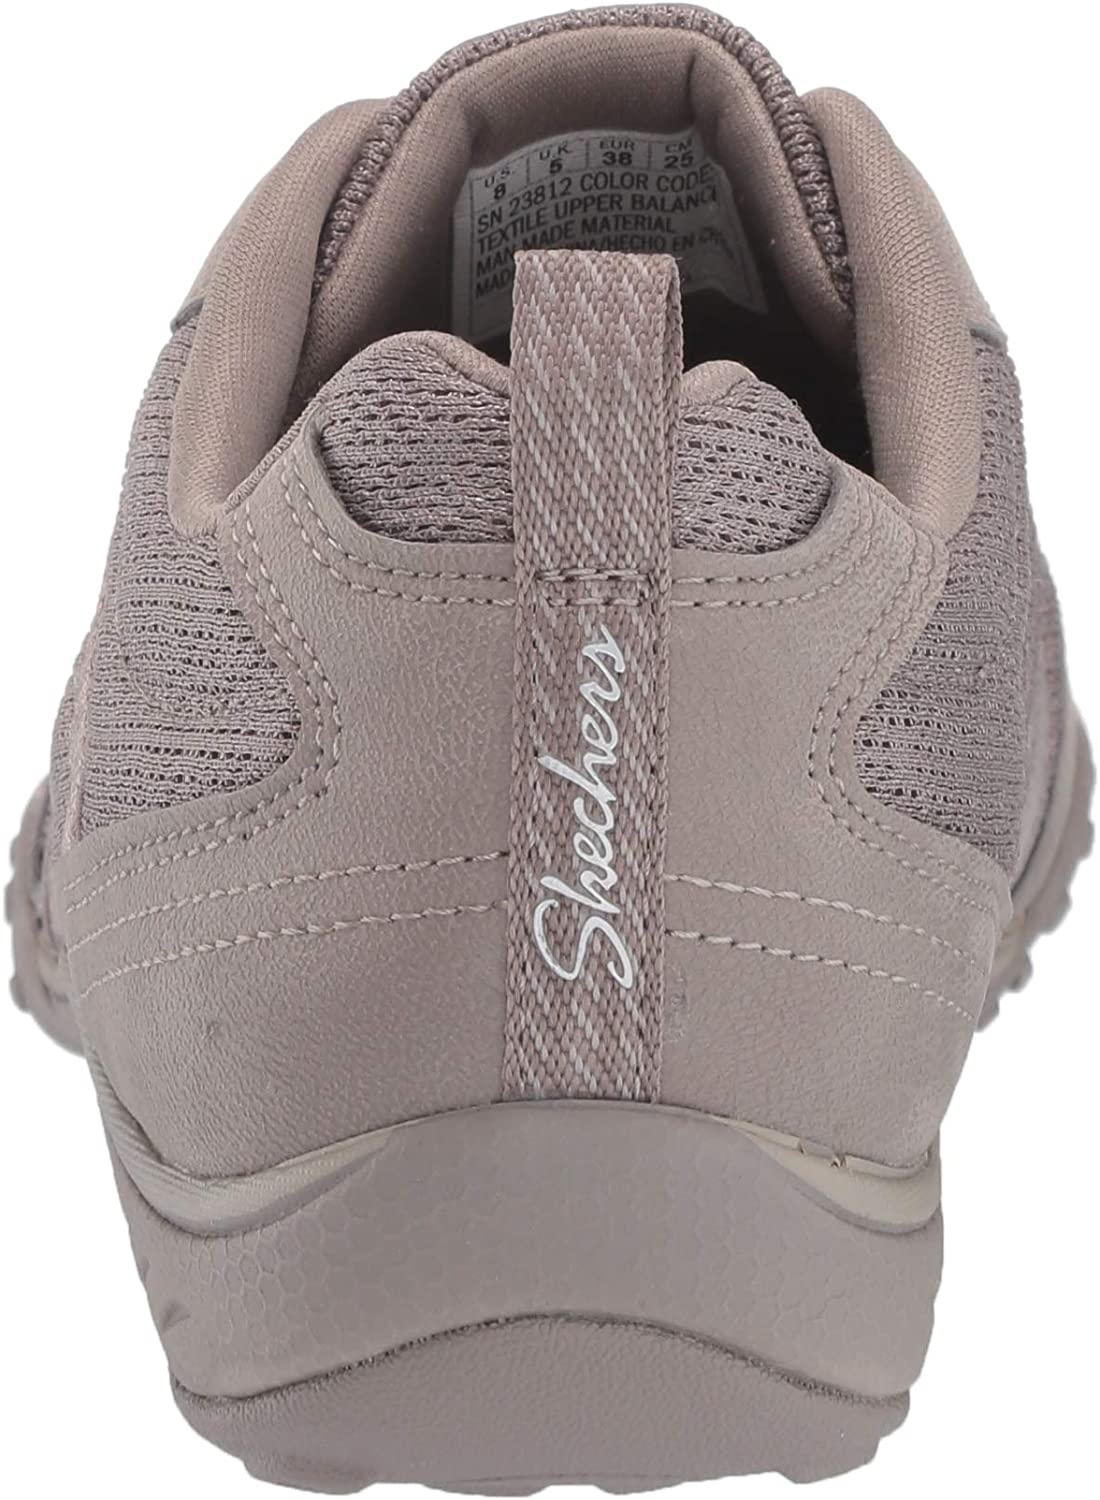 Skechers Breathe-Easy-Be-Relaxed, Baskets Enfiler Femme Beige Taupe Micro Leather Mesh Natural Trim Tpe